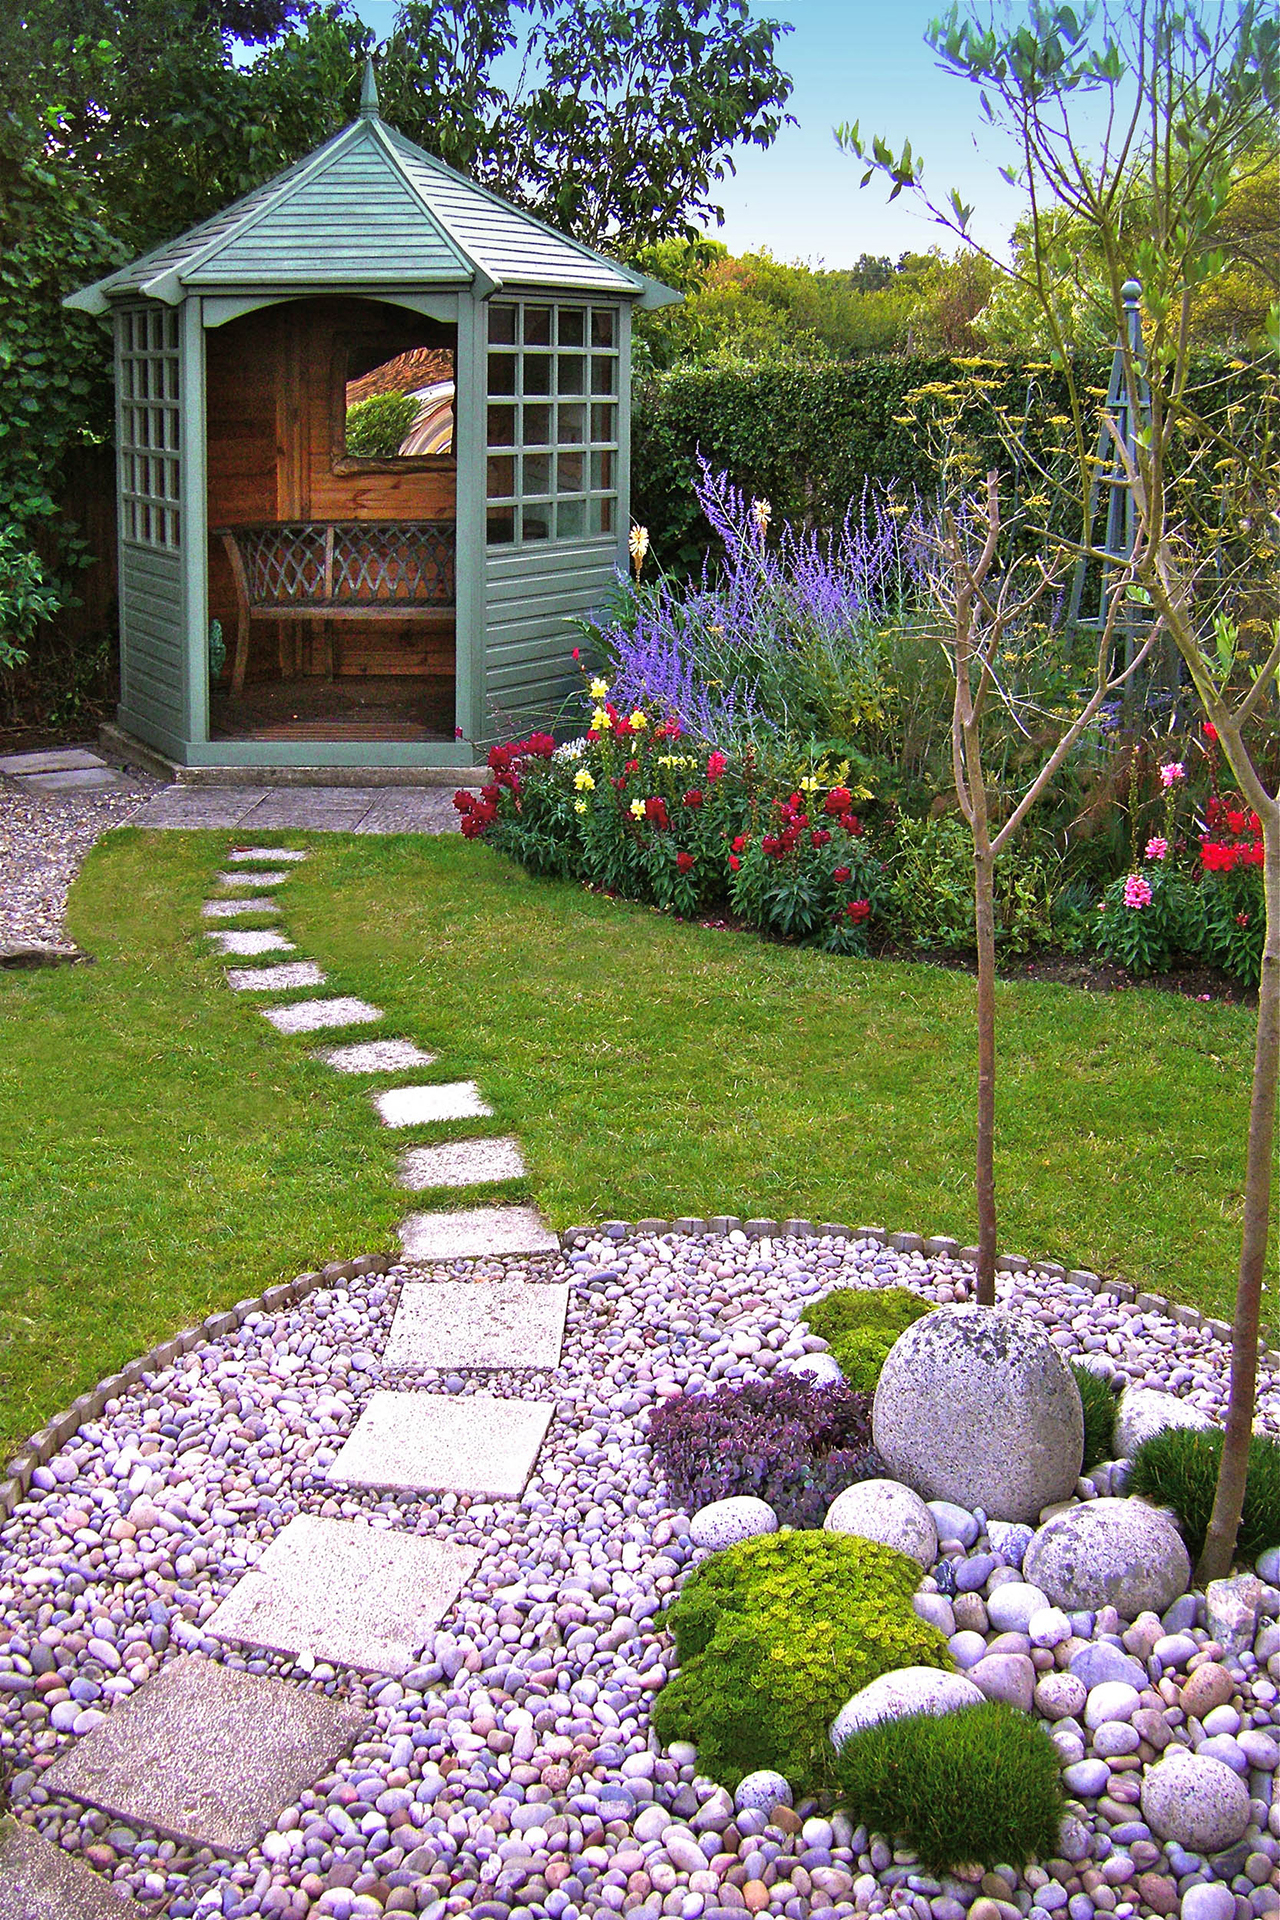 Simple Backyard Landscaping Design Idea Home Inspirations Small within 12 Smart Concepts of How to Makeover Landscaping Plans Backyard